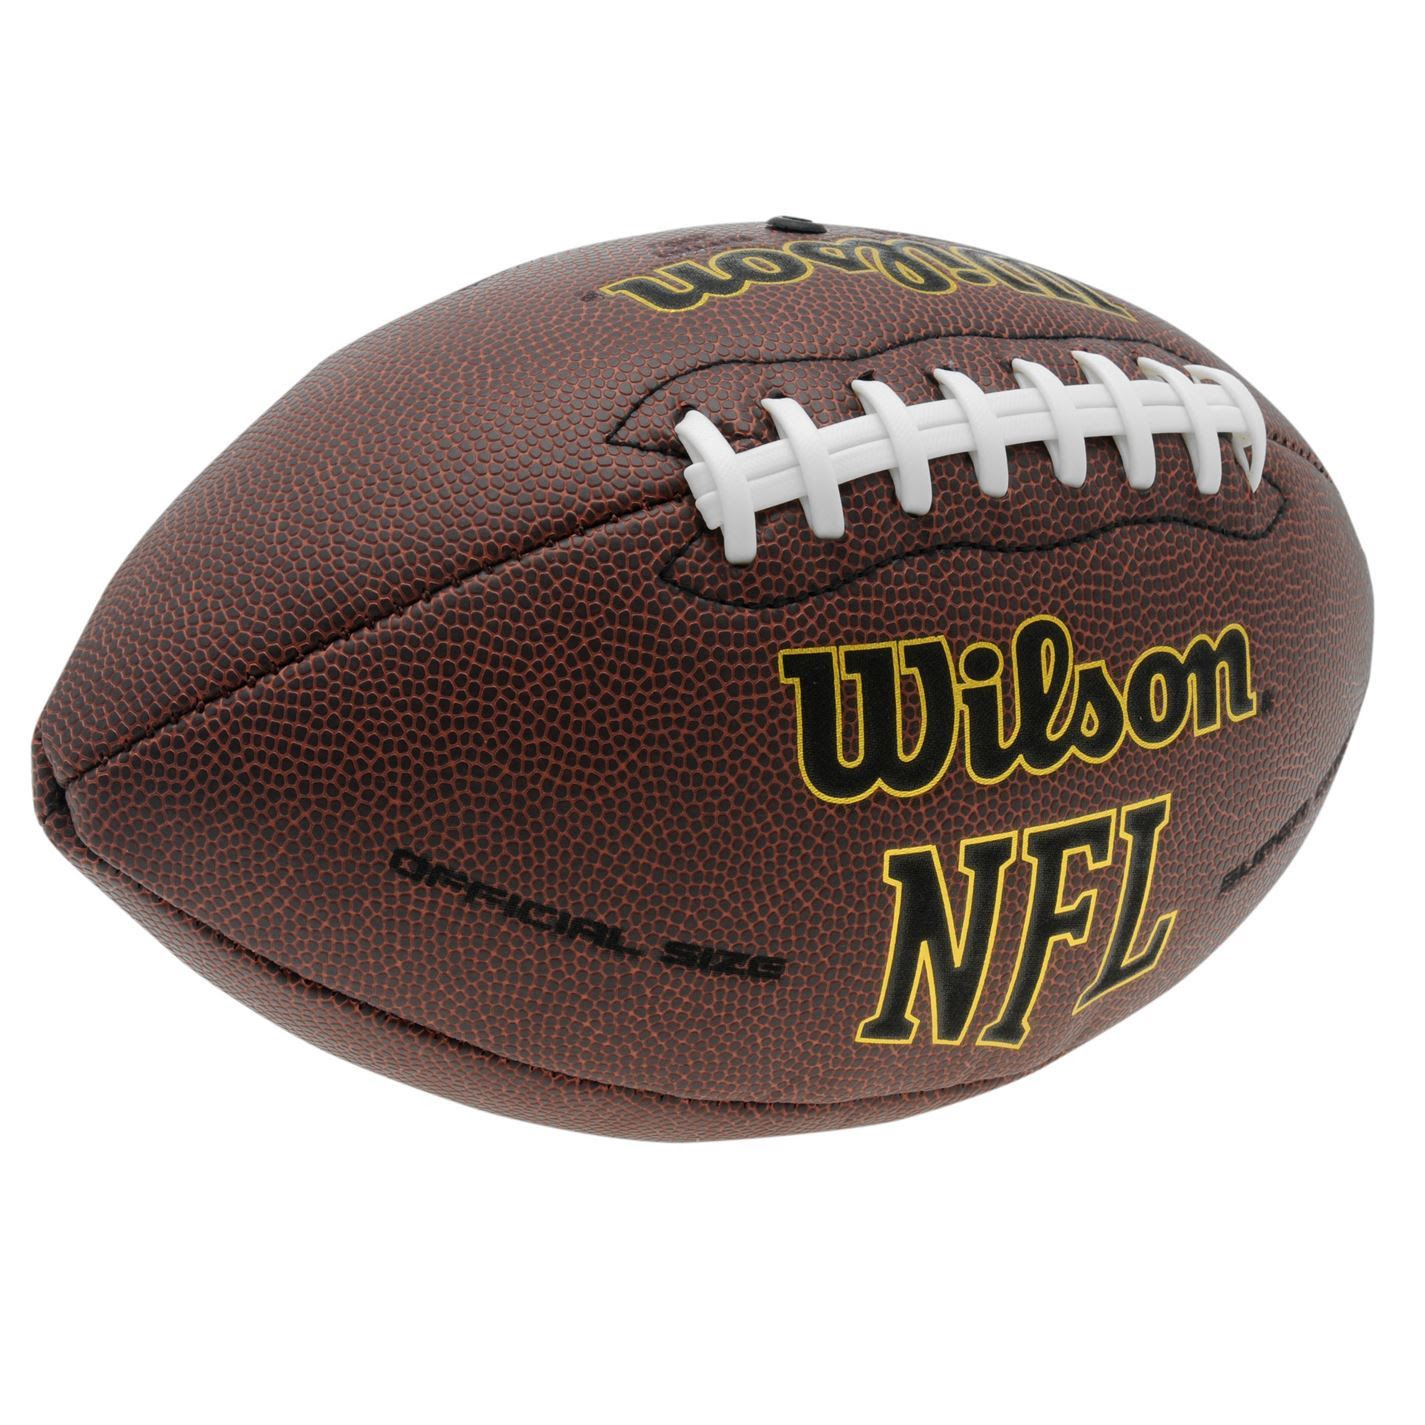 Wilson Nfl American Football Ball Tackified Composite Leather UltraGrip Game  eBay